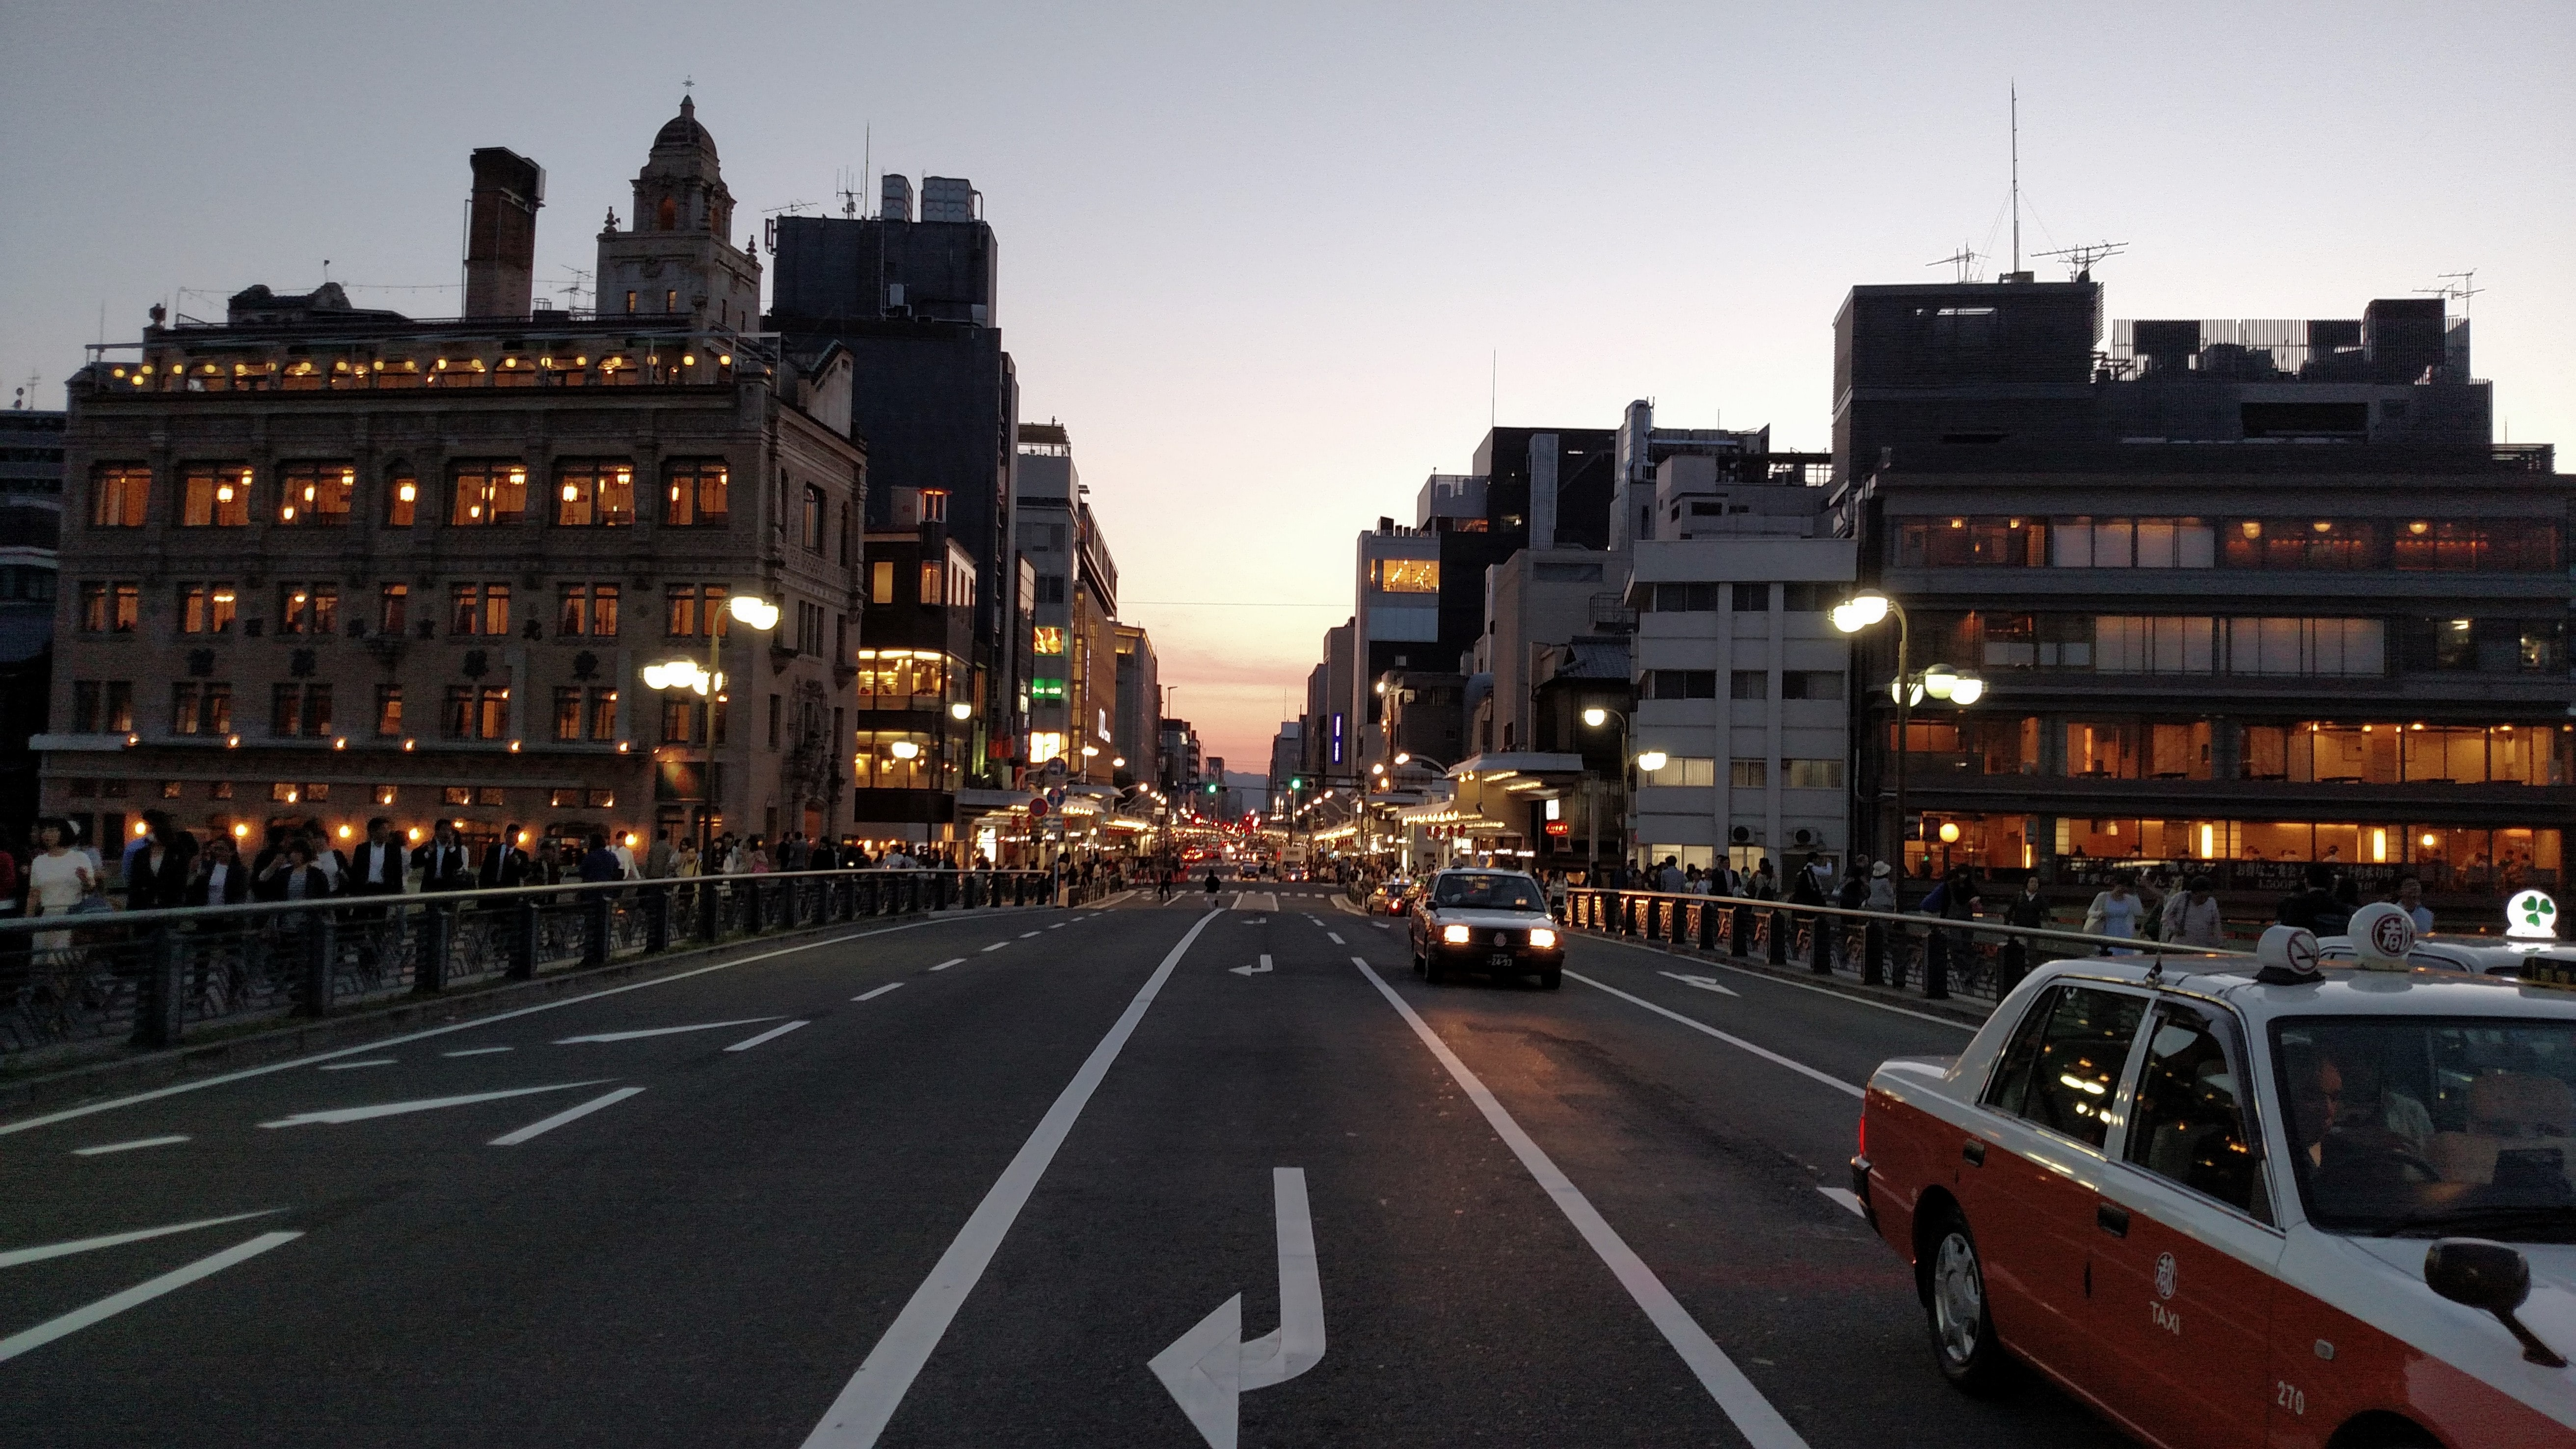 An asphalt road in Kyoto on an evening